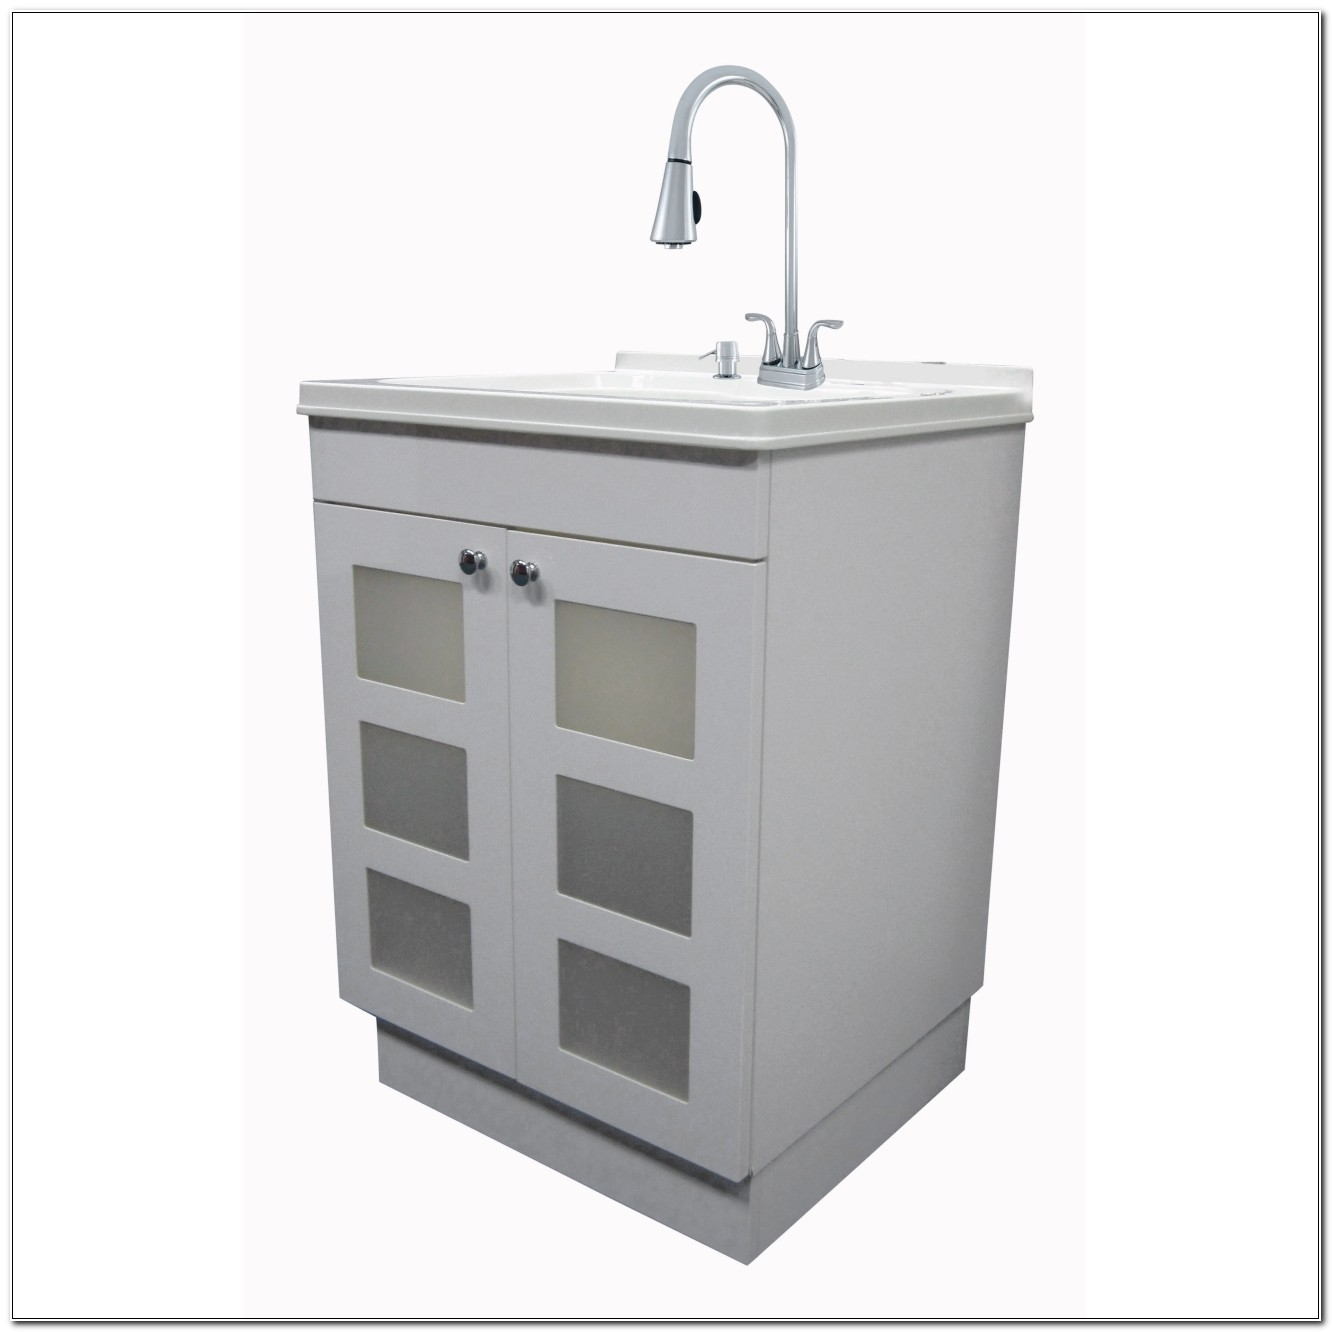 Laundry Utility Sink And Cabinet